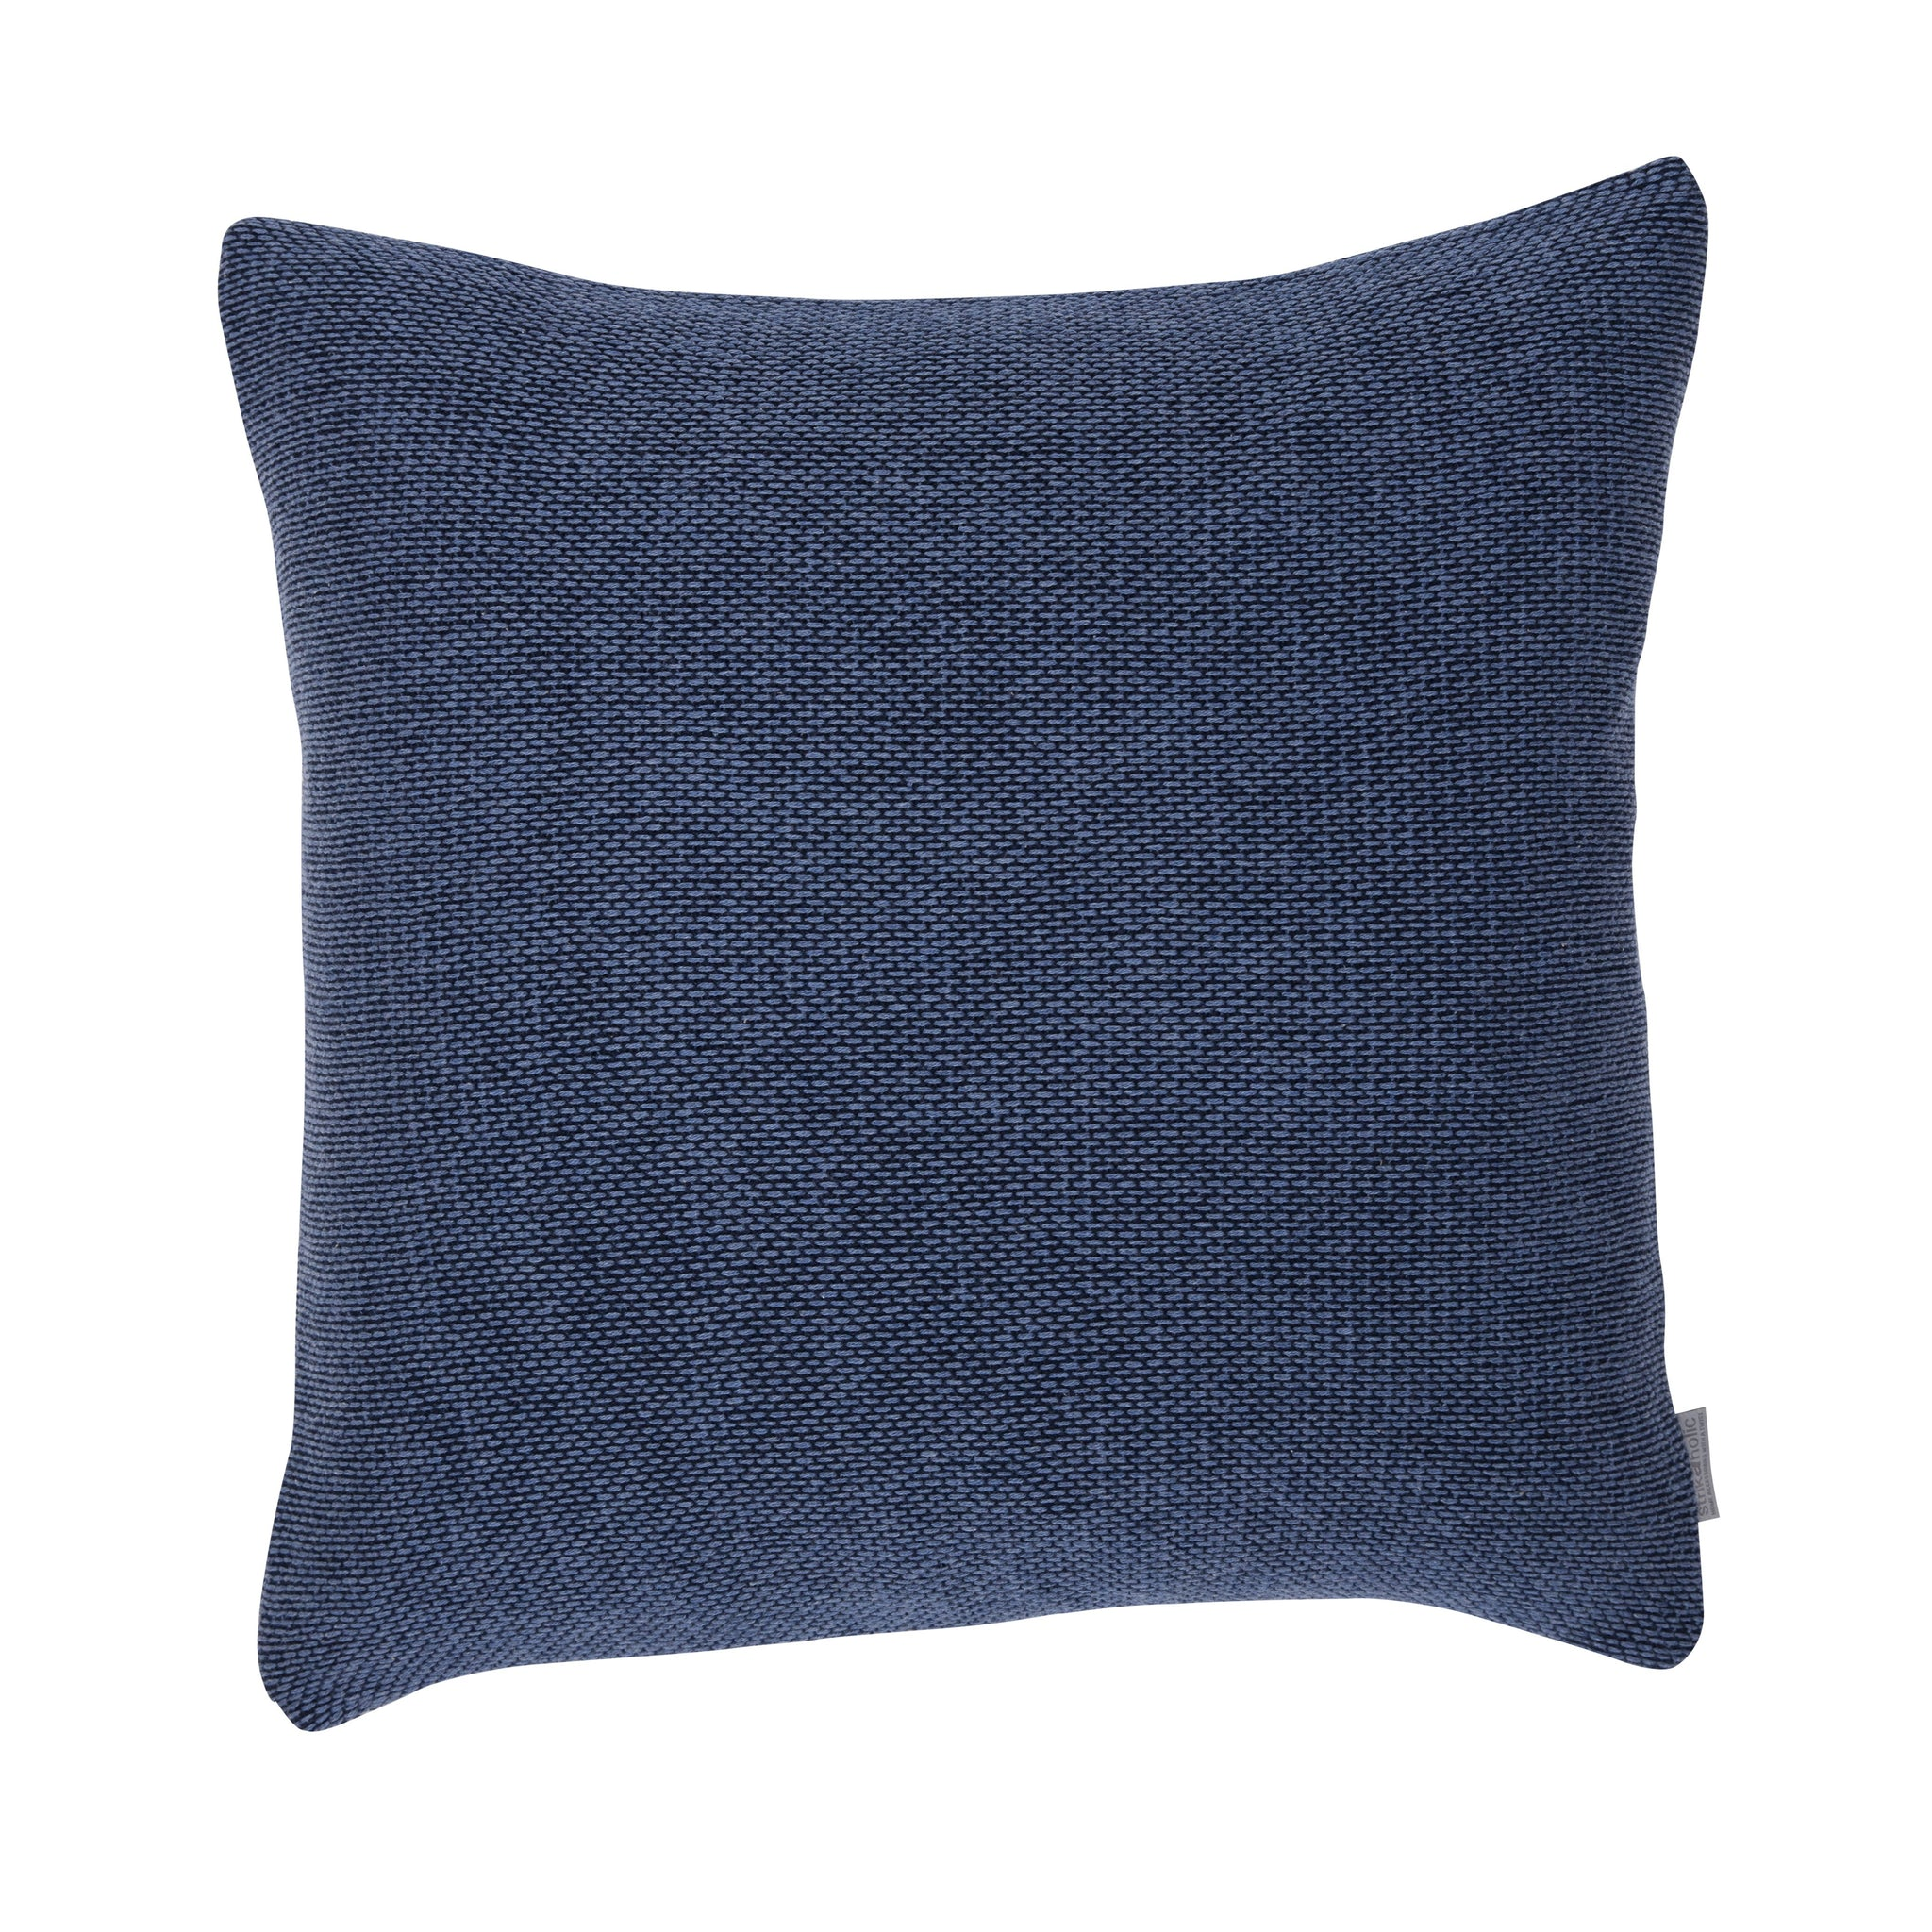 Beads cushion 50X50, dark blue